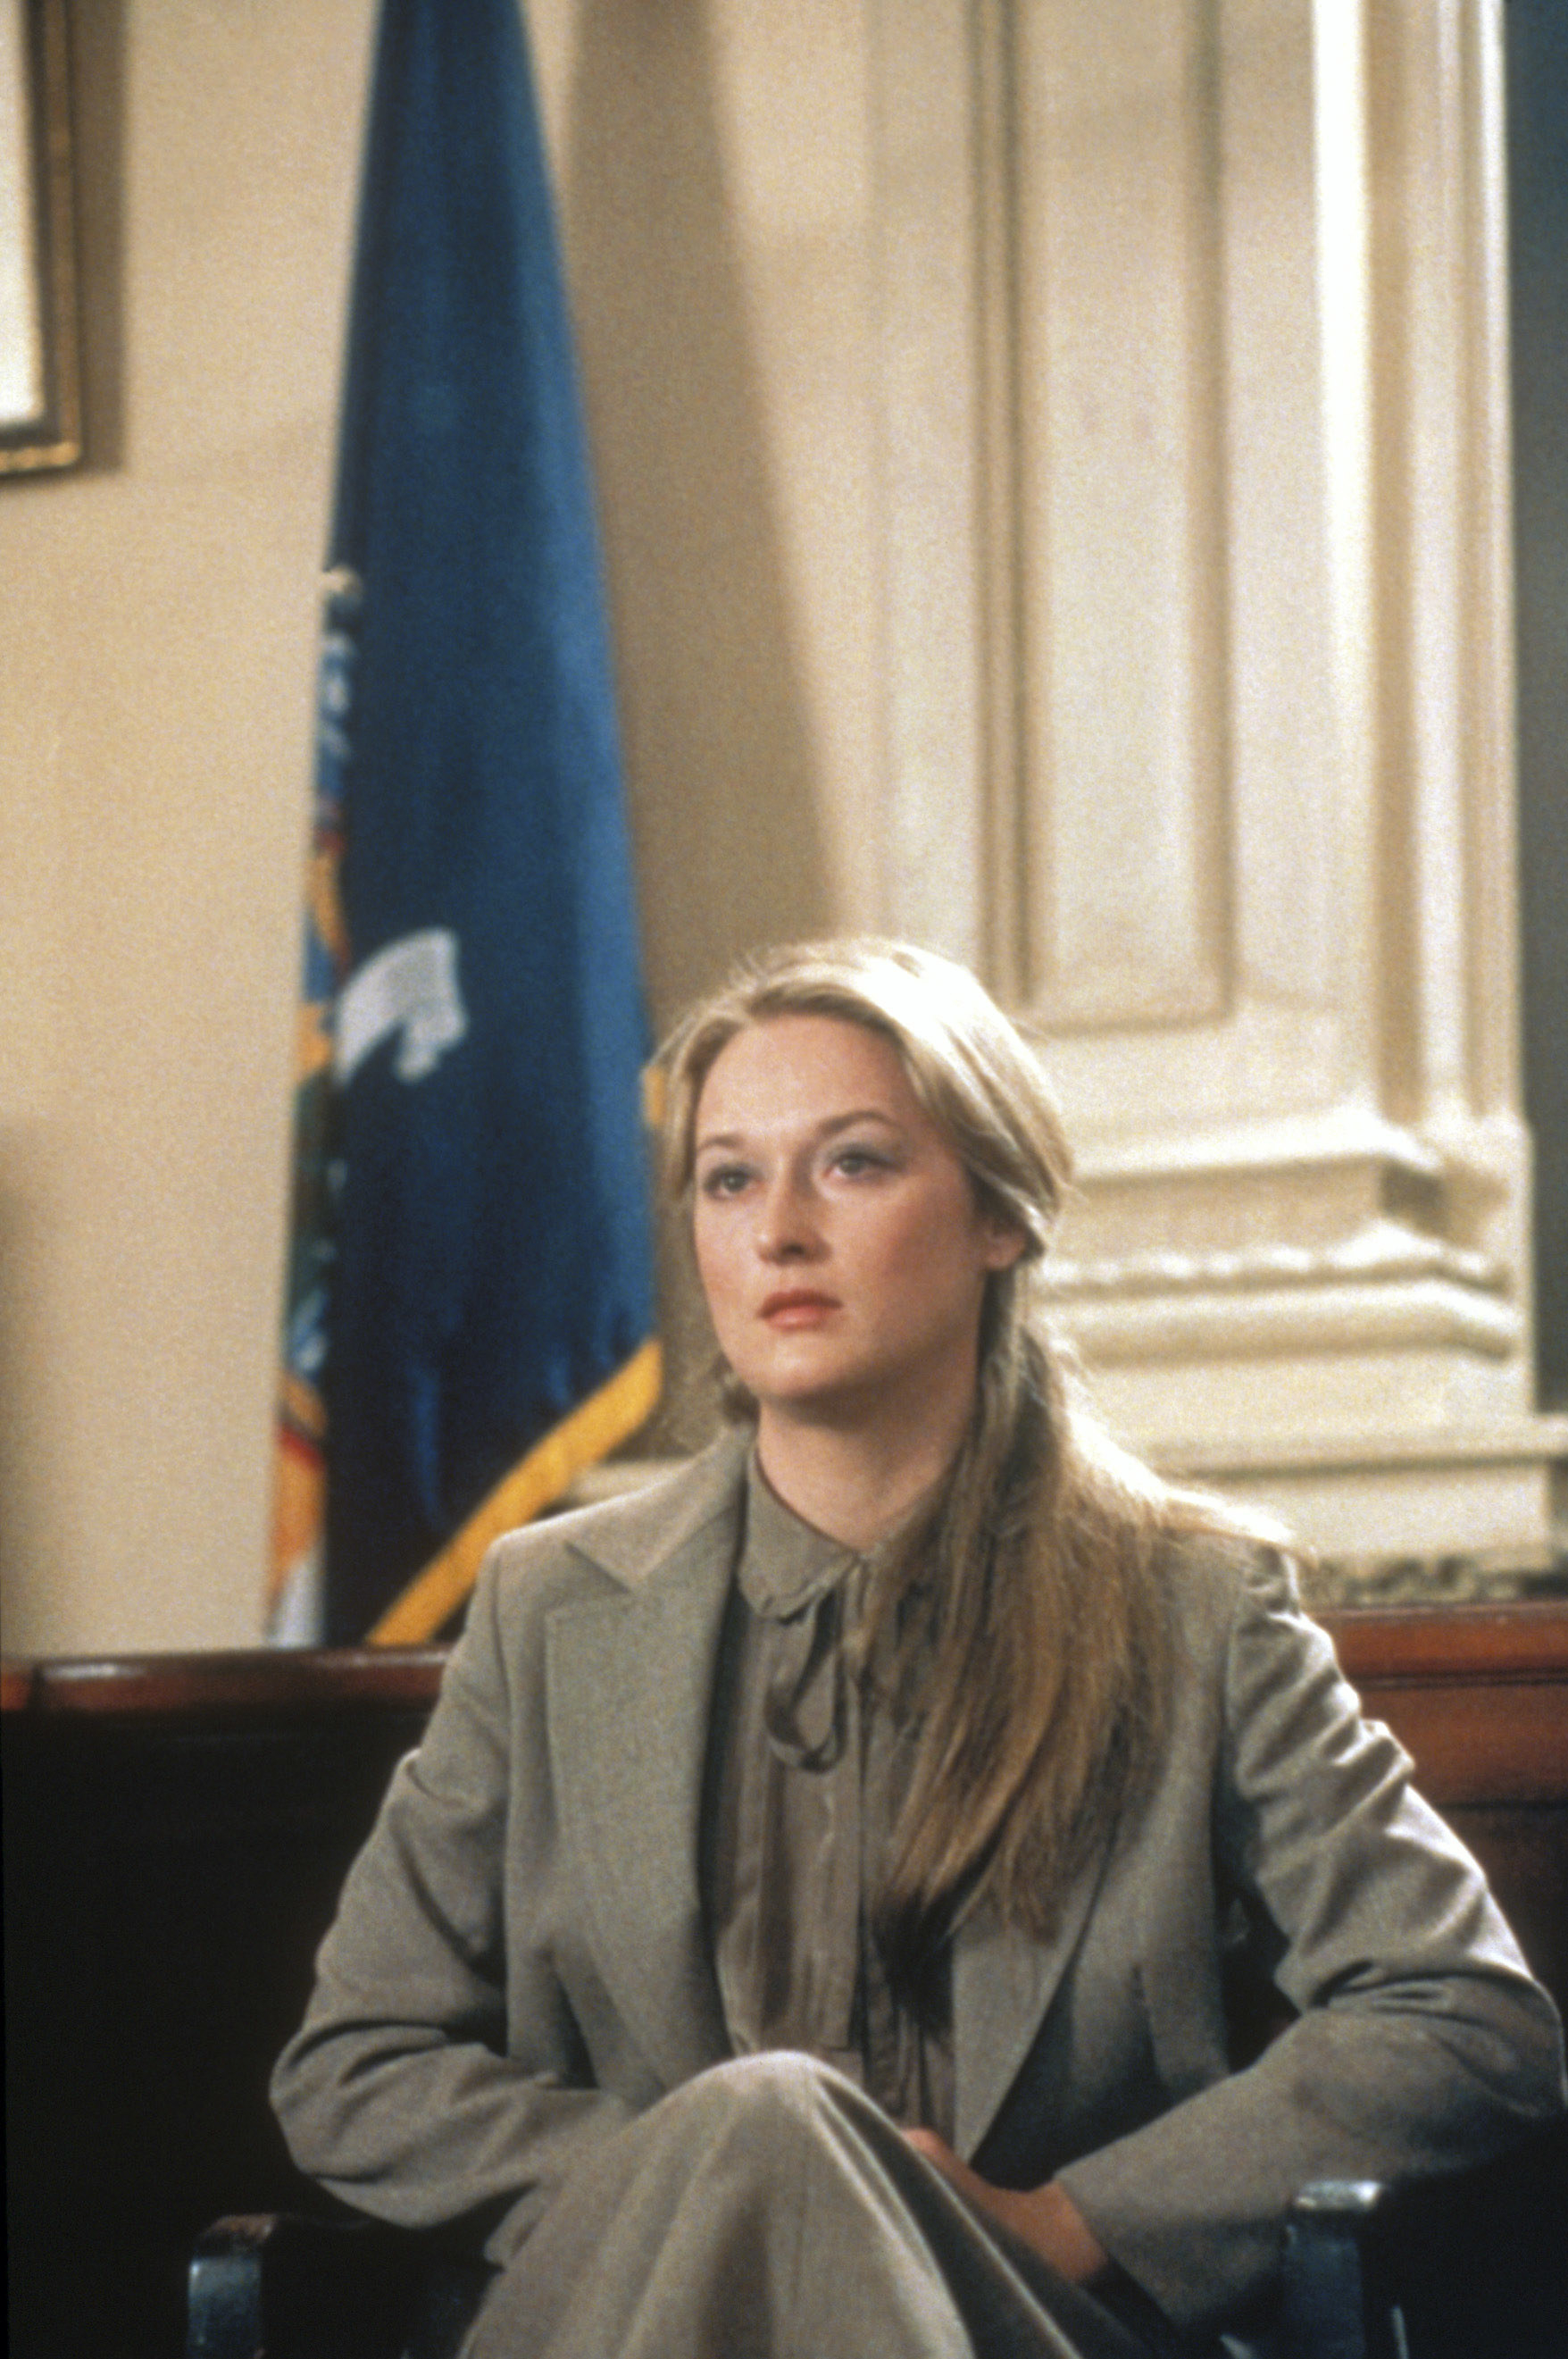 Joana in the courtroom